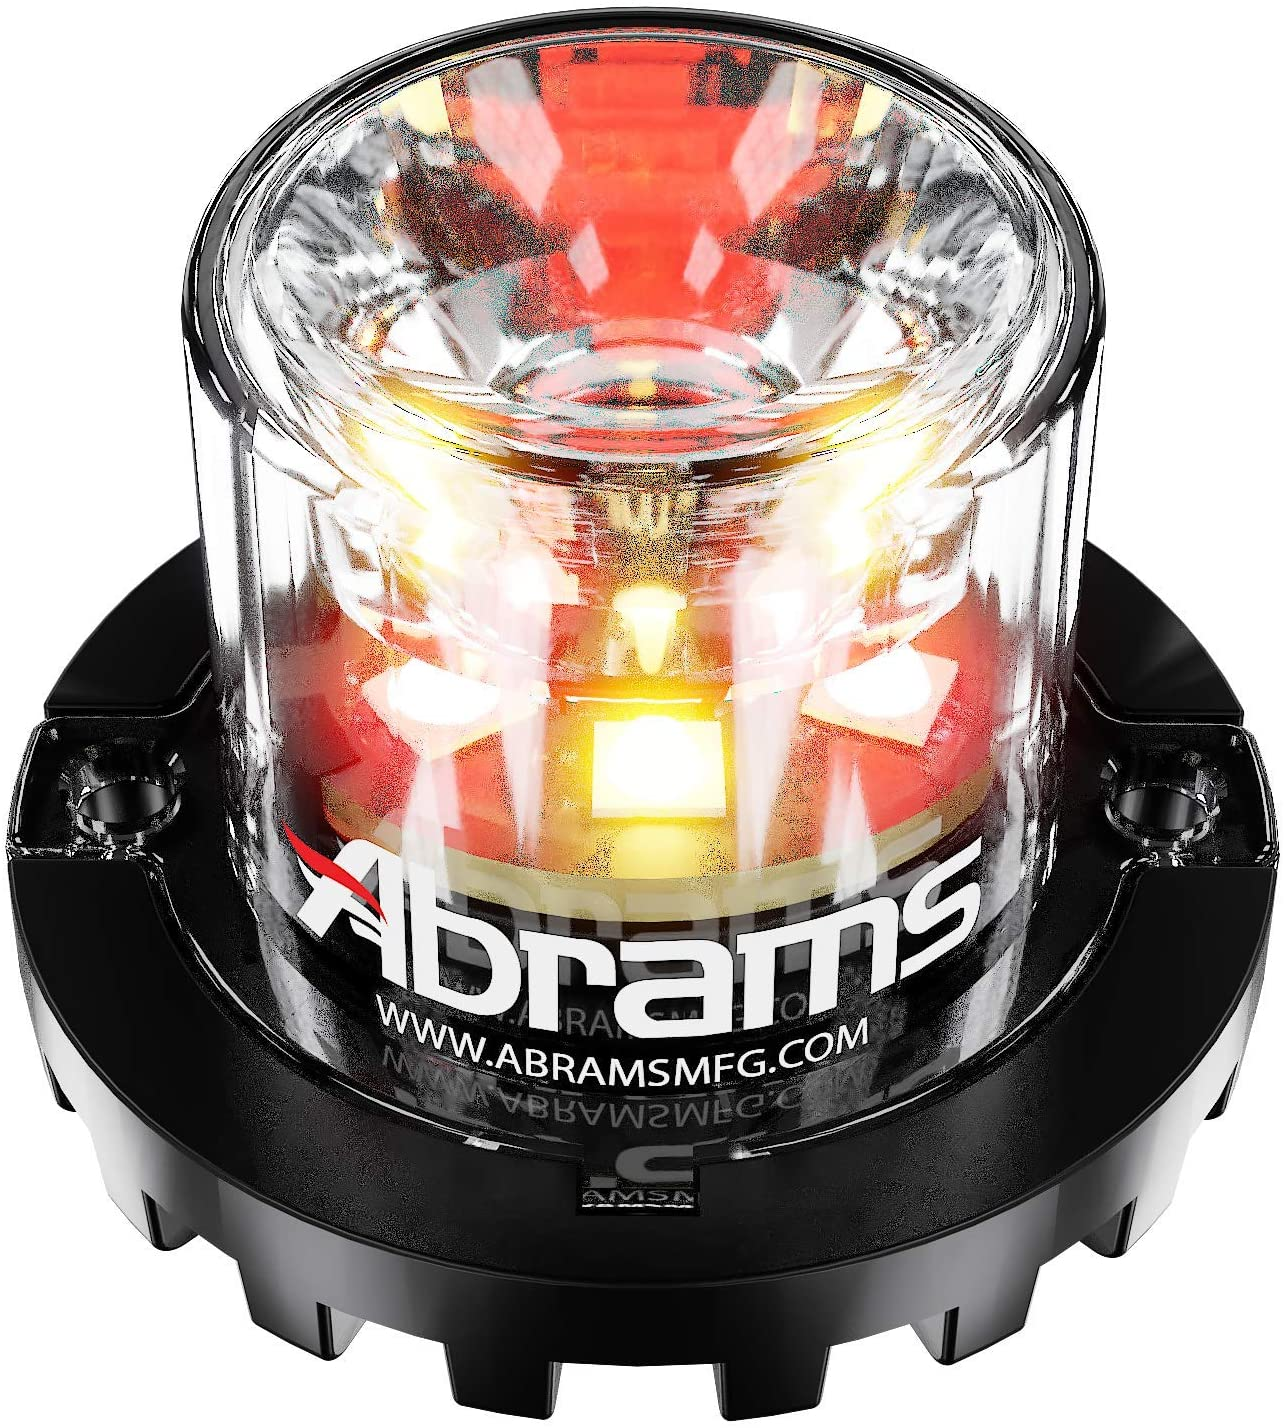 Abrams SAE Class-1 Blaster 360 (Amber/Red) 18W - 6 LED Emergency Vehicle Truck LED Hideaway Surface Mount Strobe Warning Light